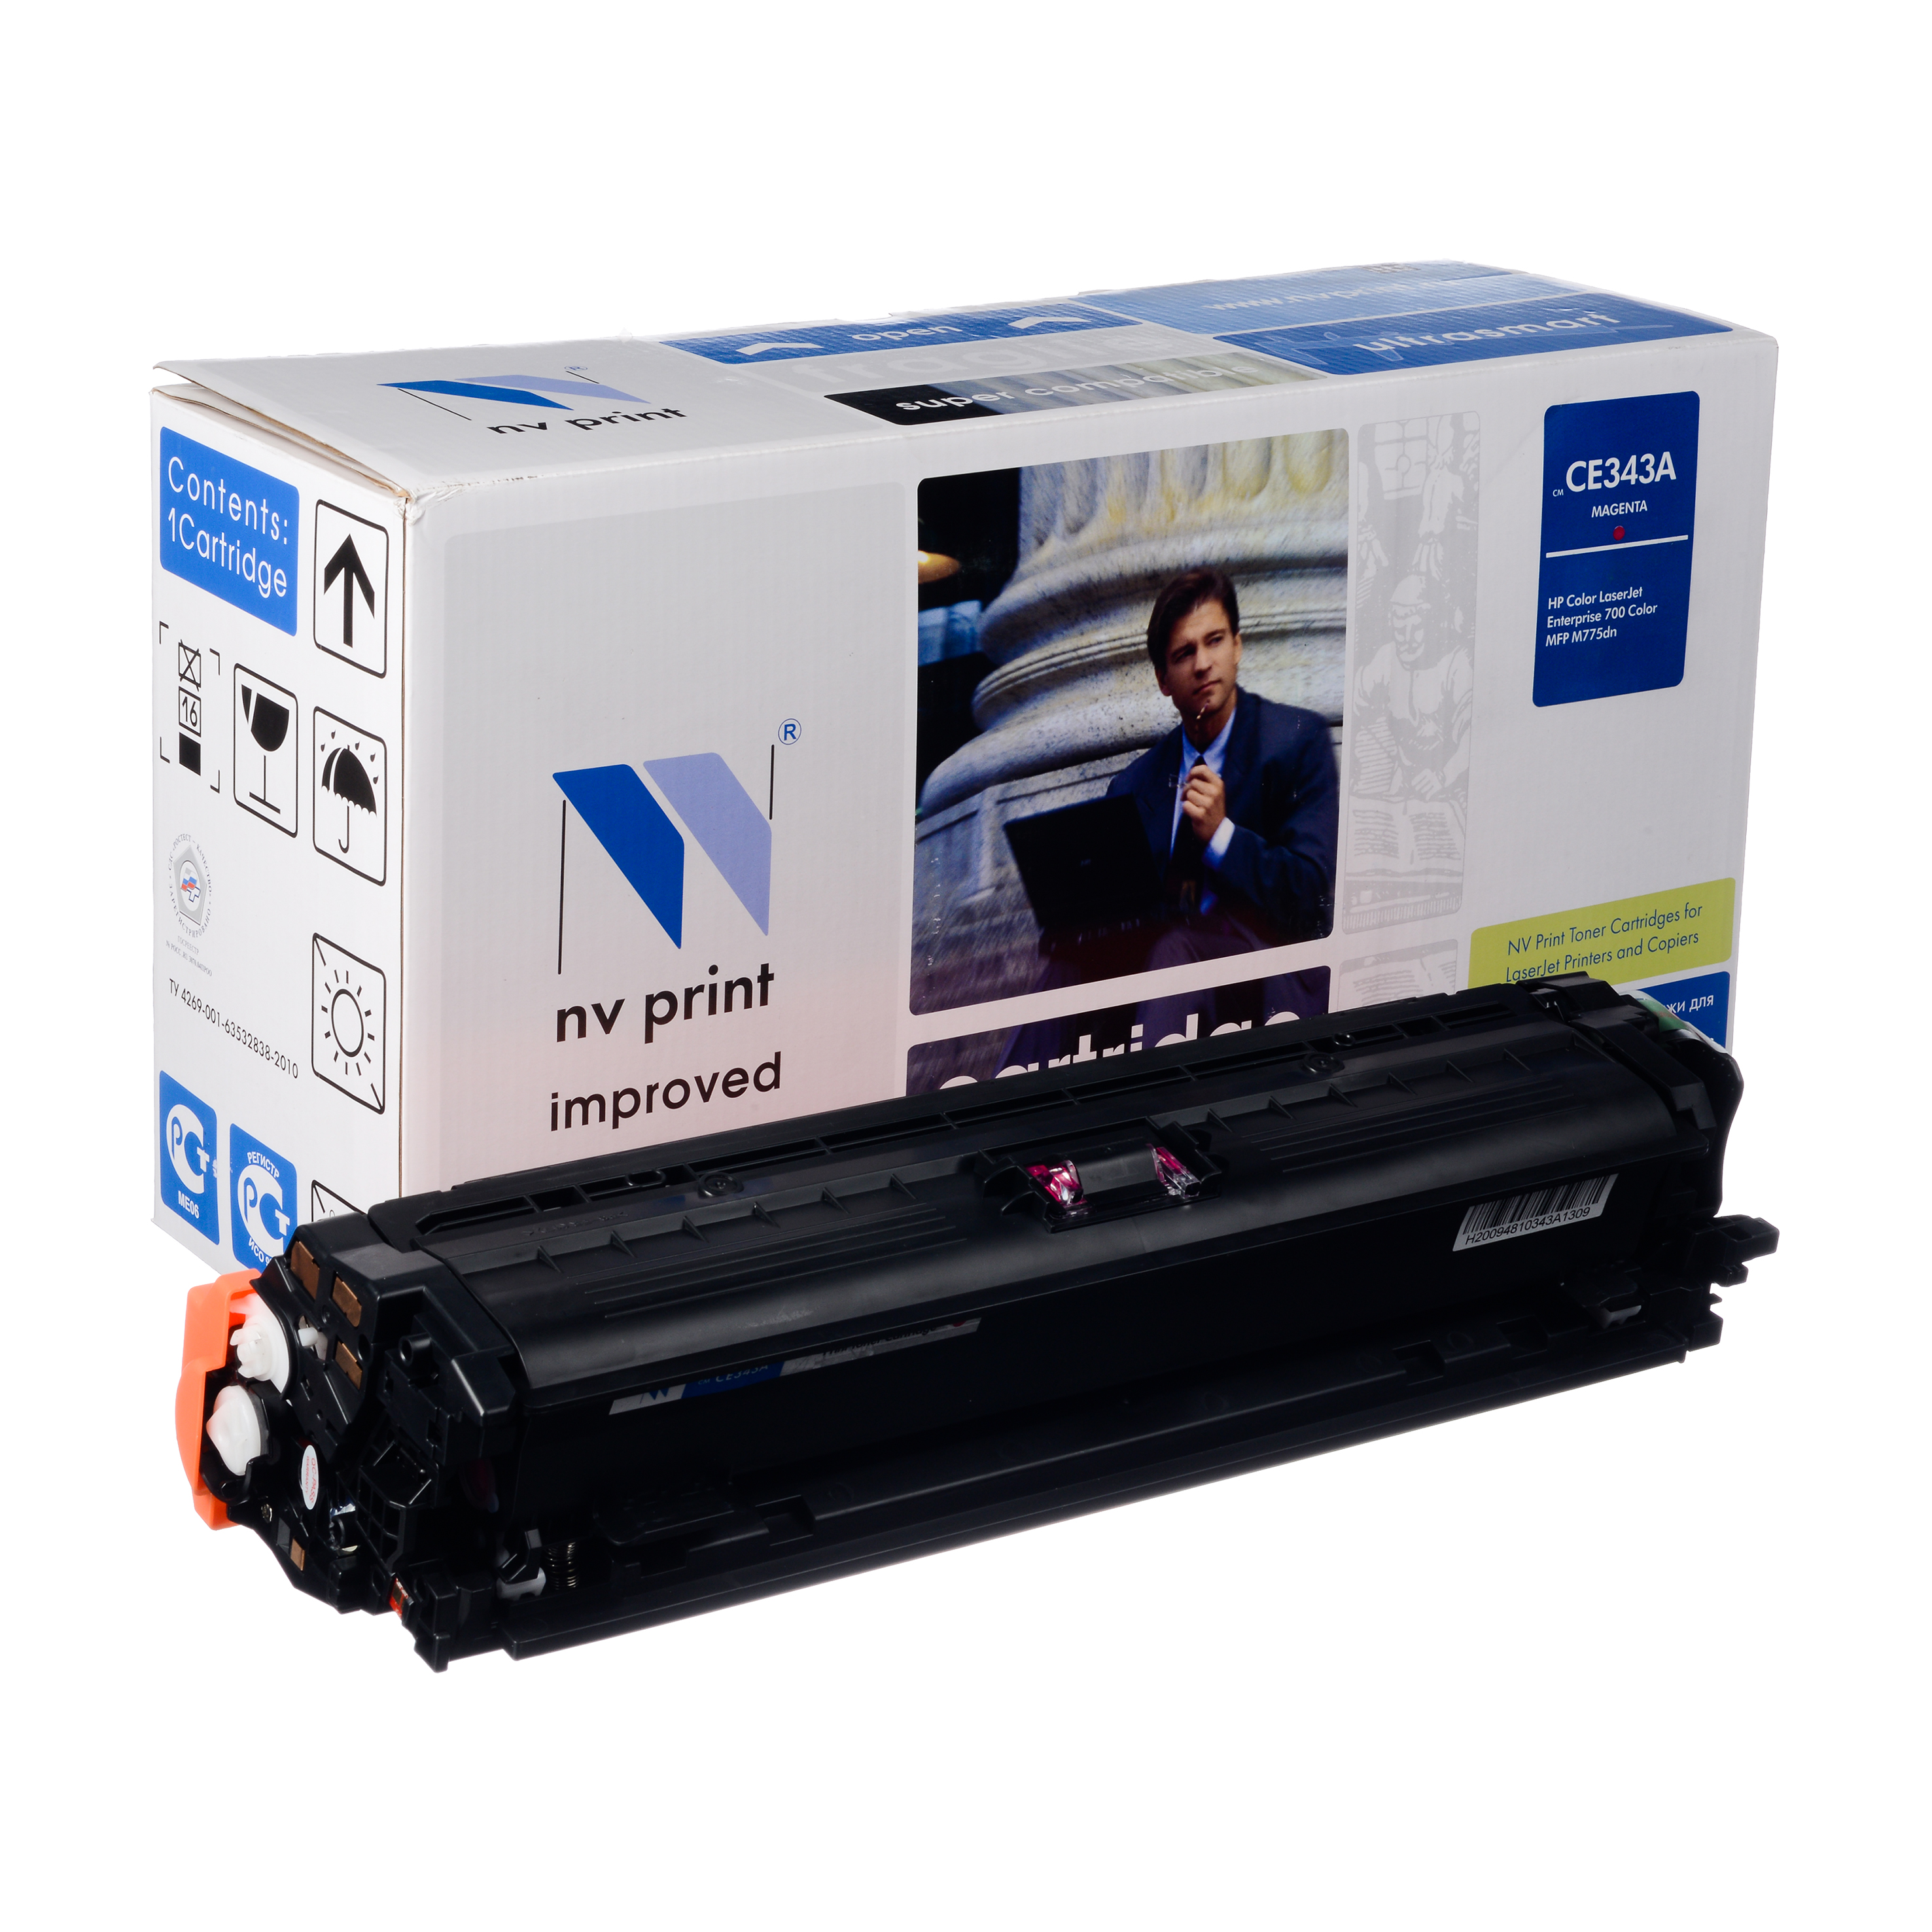 Картридж NV Print CE343A magentaКартридж NV Print для HP CLJ Color  MFP M775Картридж NV Print для HP CLJ Color  MFP M775